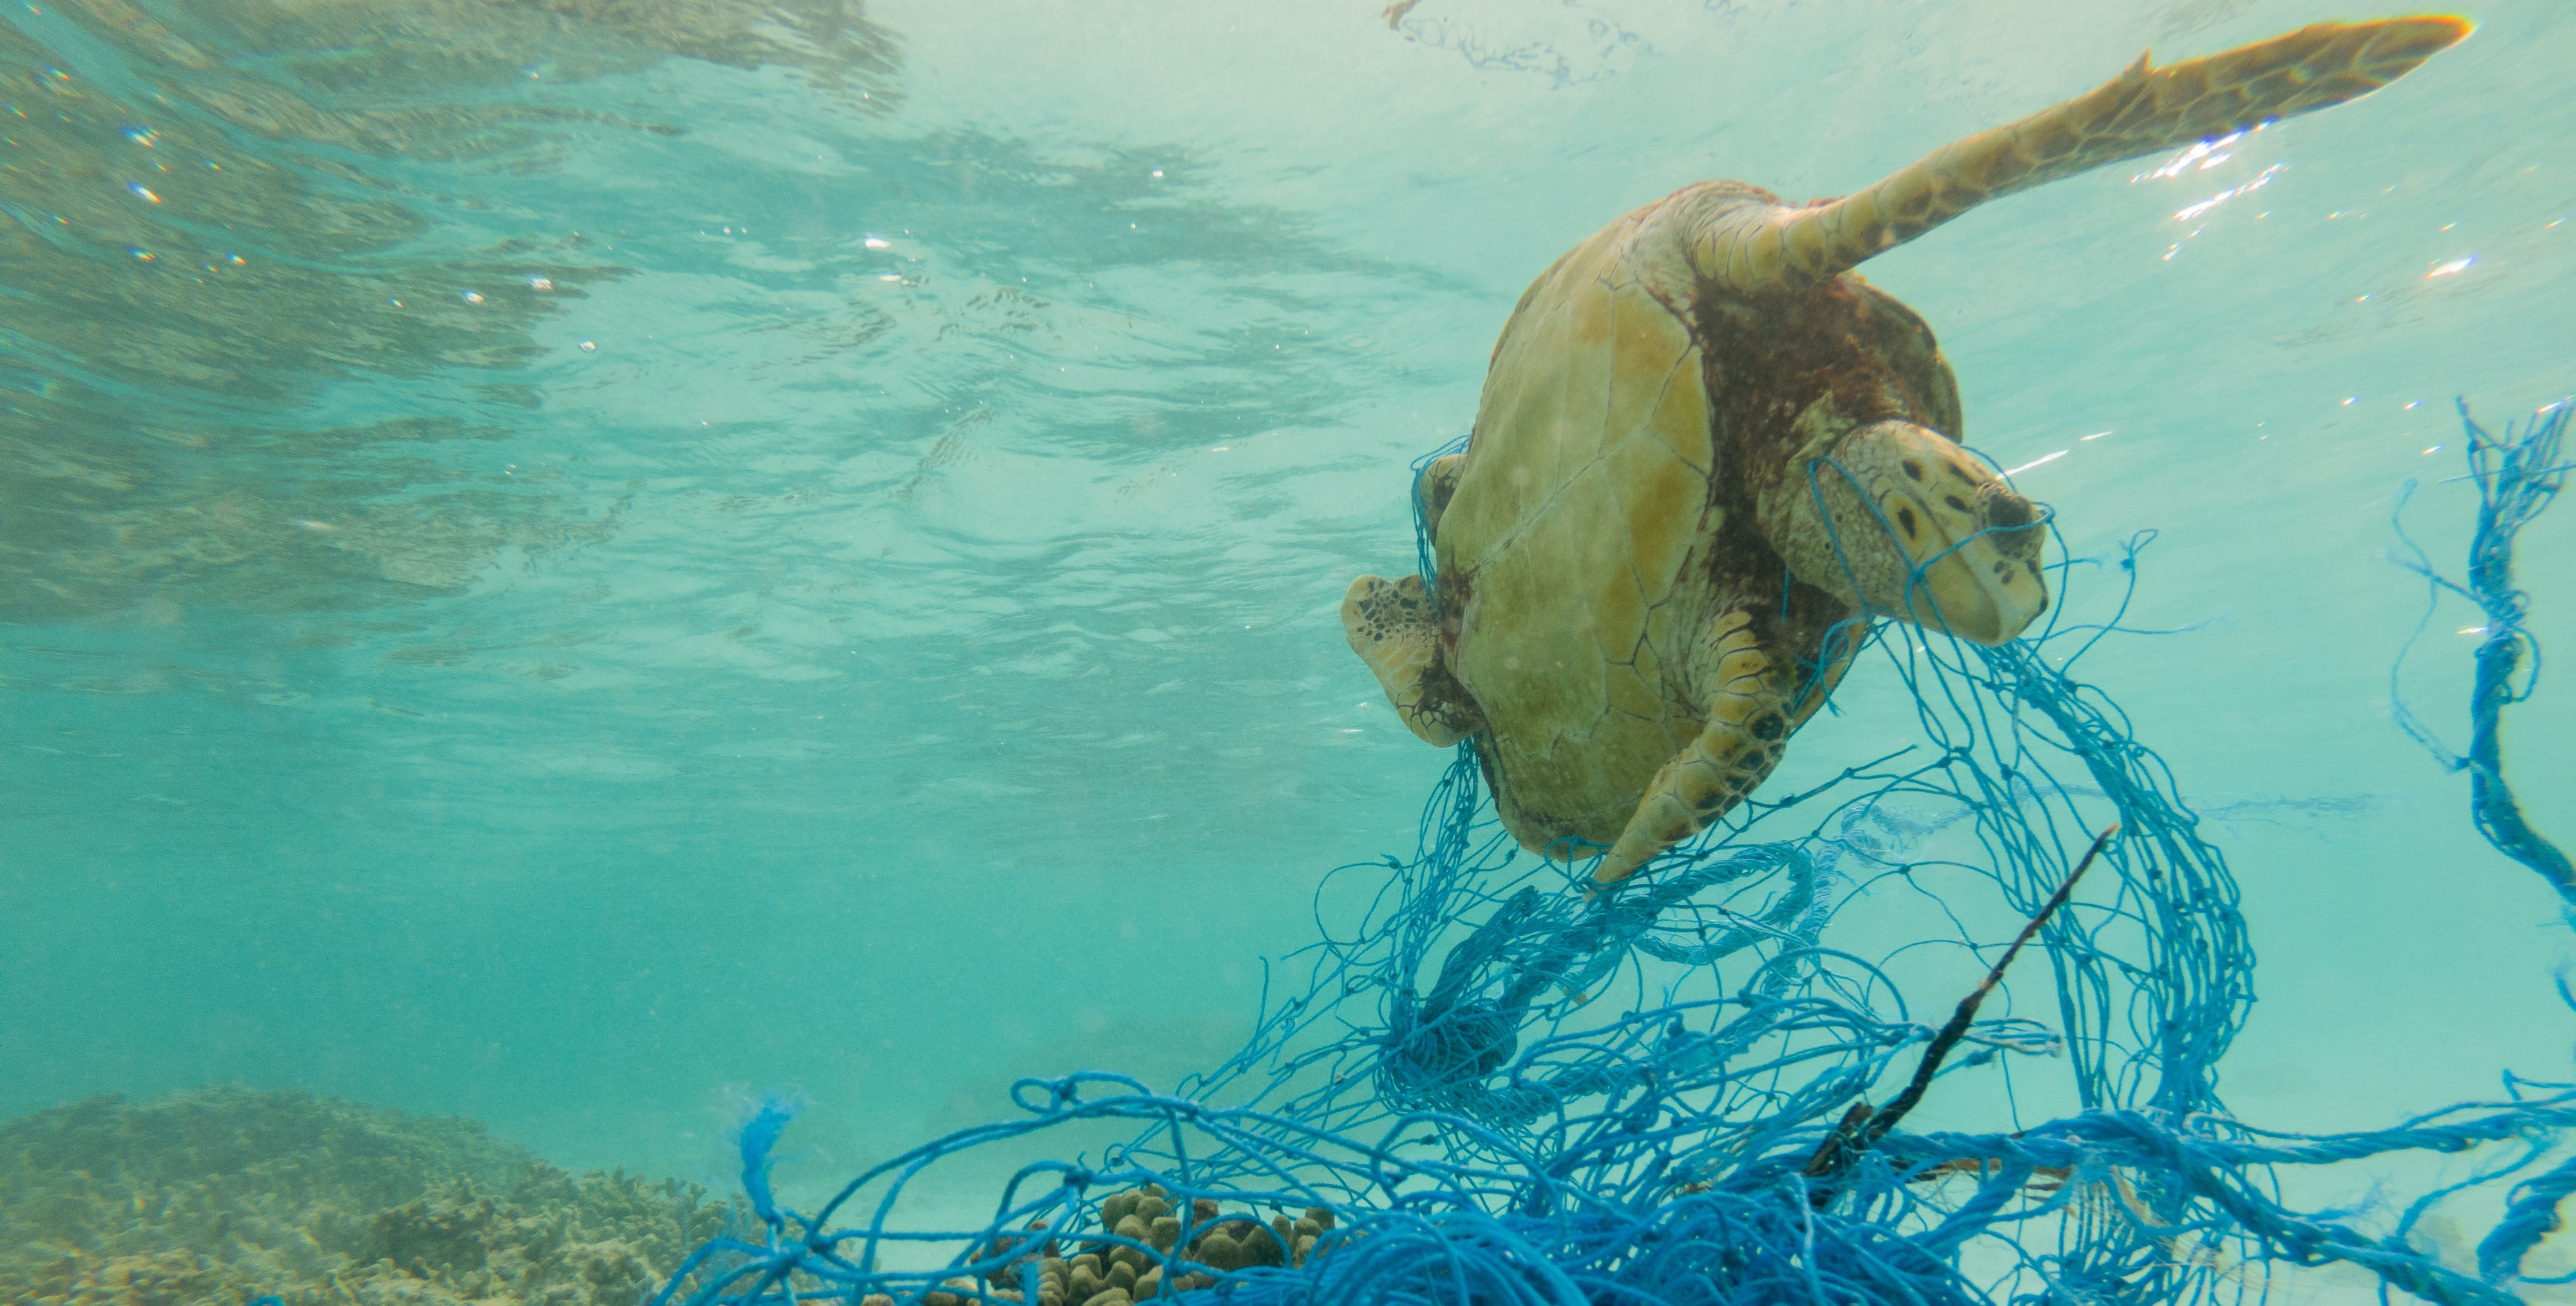 Fishing nets are deadly for the environment